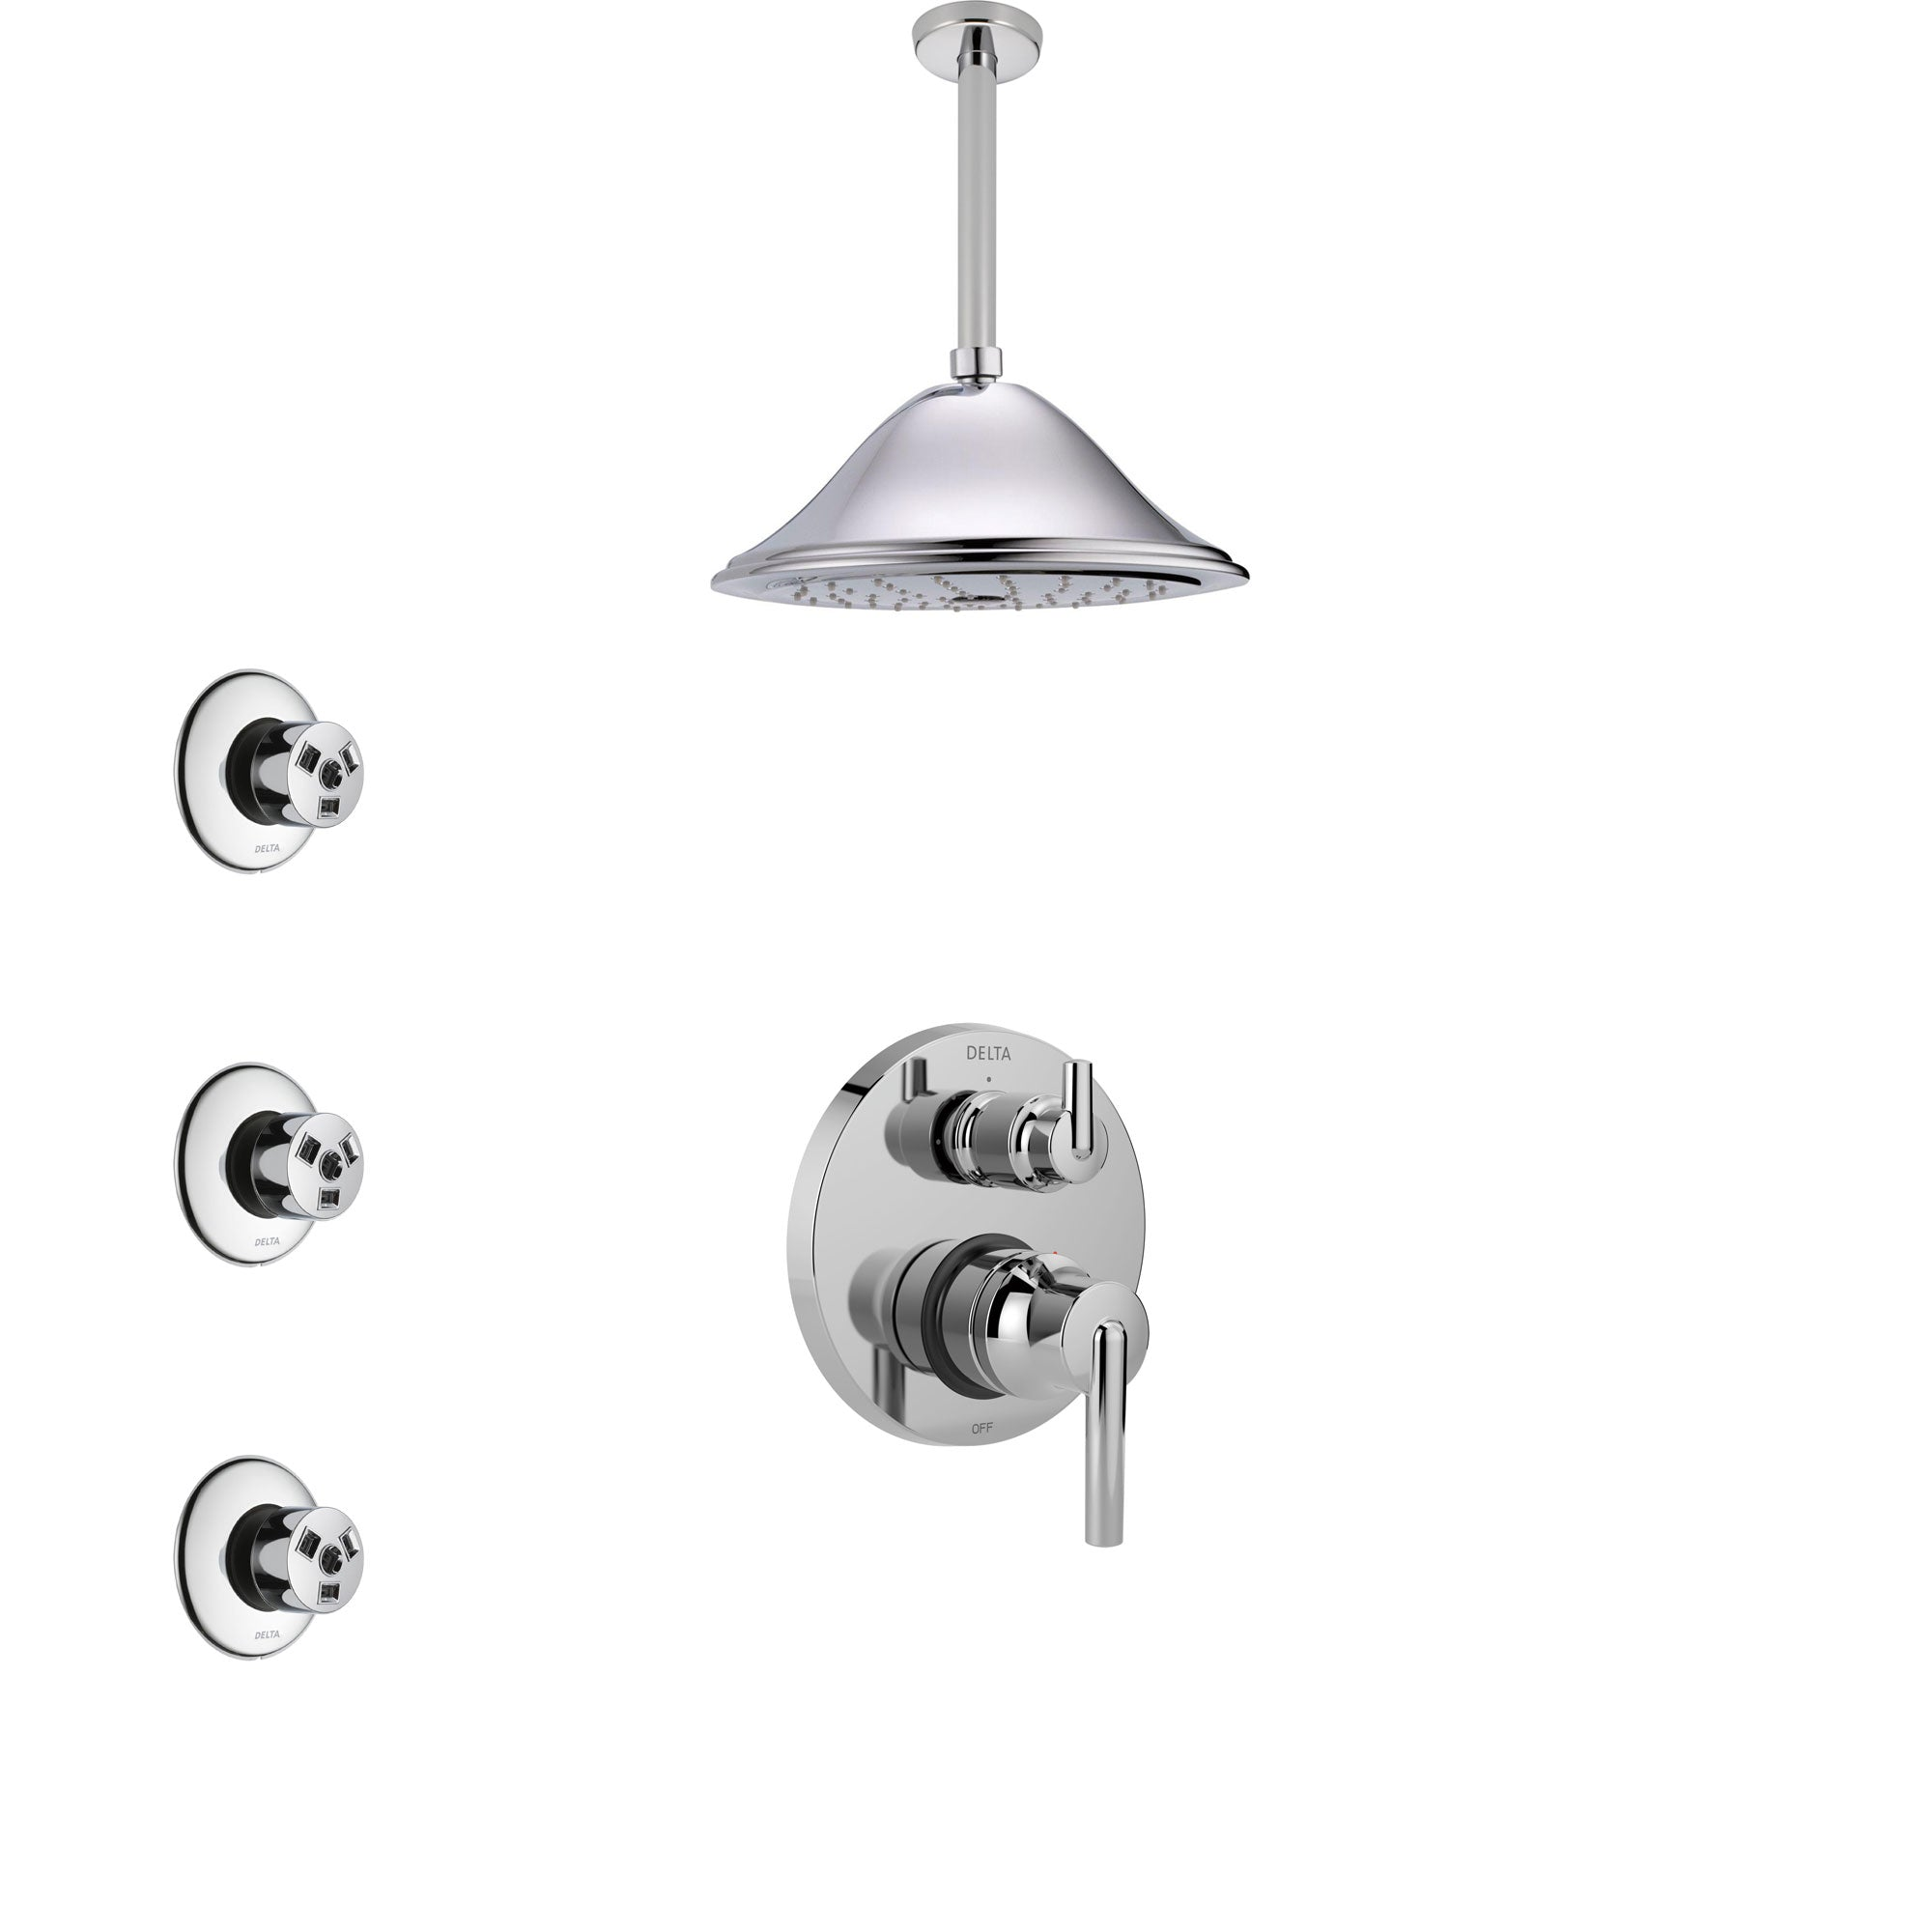 Delta Trinsic Chrome Finish Shower System with Control Handle, Integrated 3-Setting Diverter, Ceiling Mount Showerhead, and 3 Body Sprays SS248594